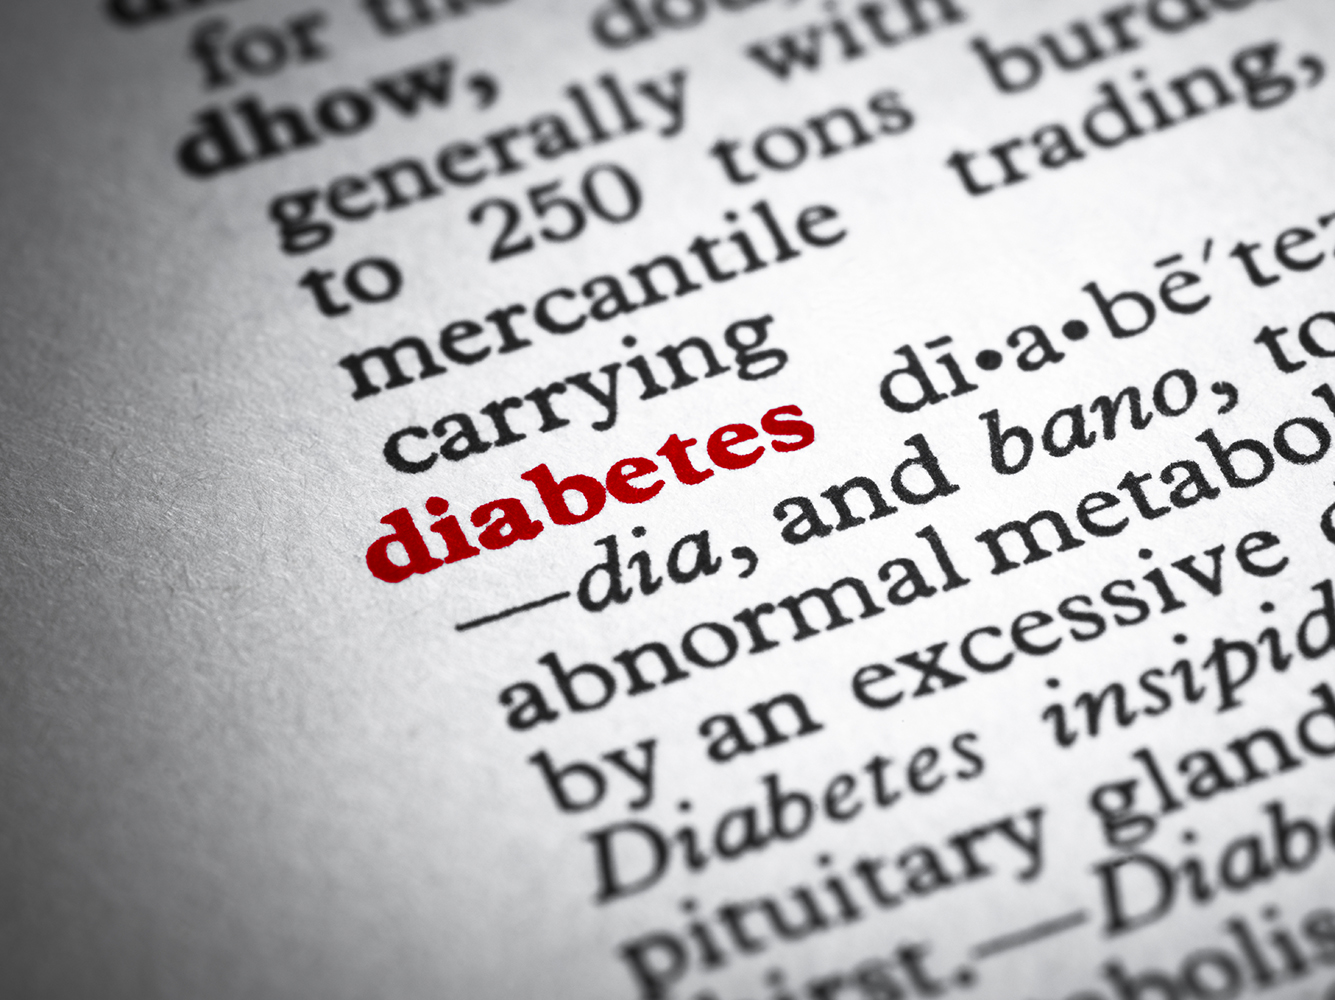 Treatment of Diabetes Begins